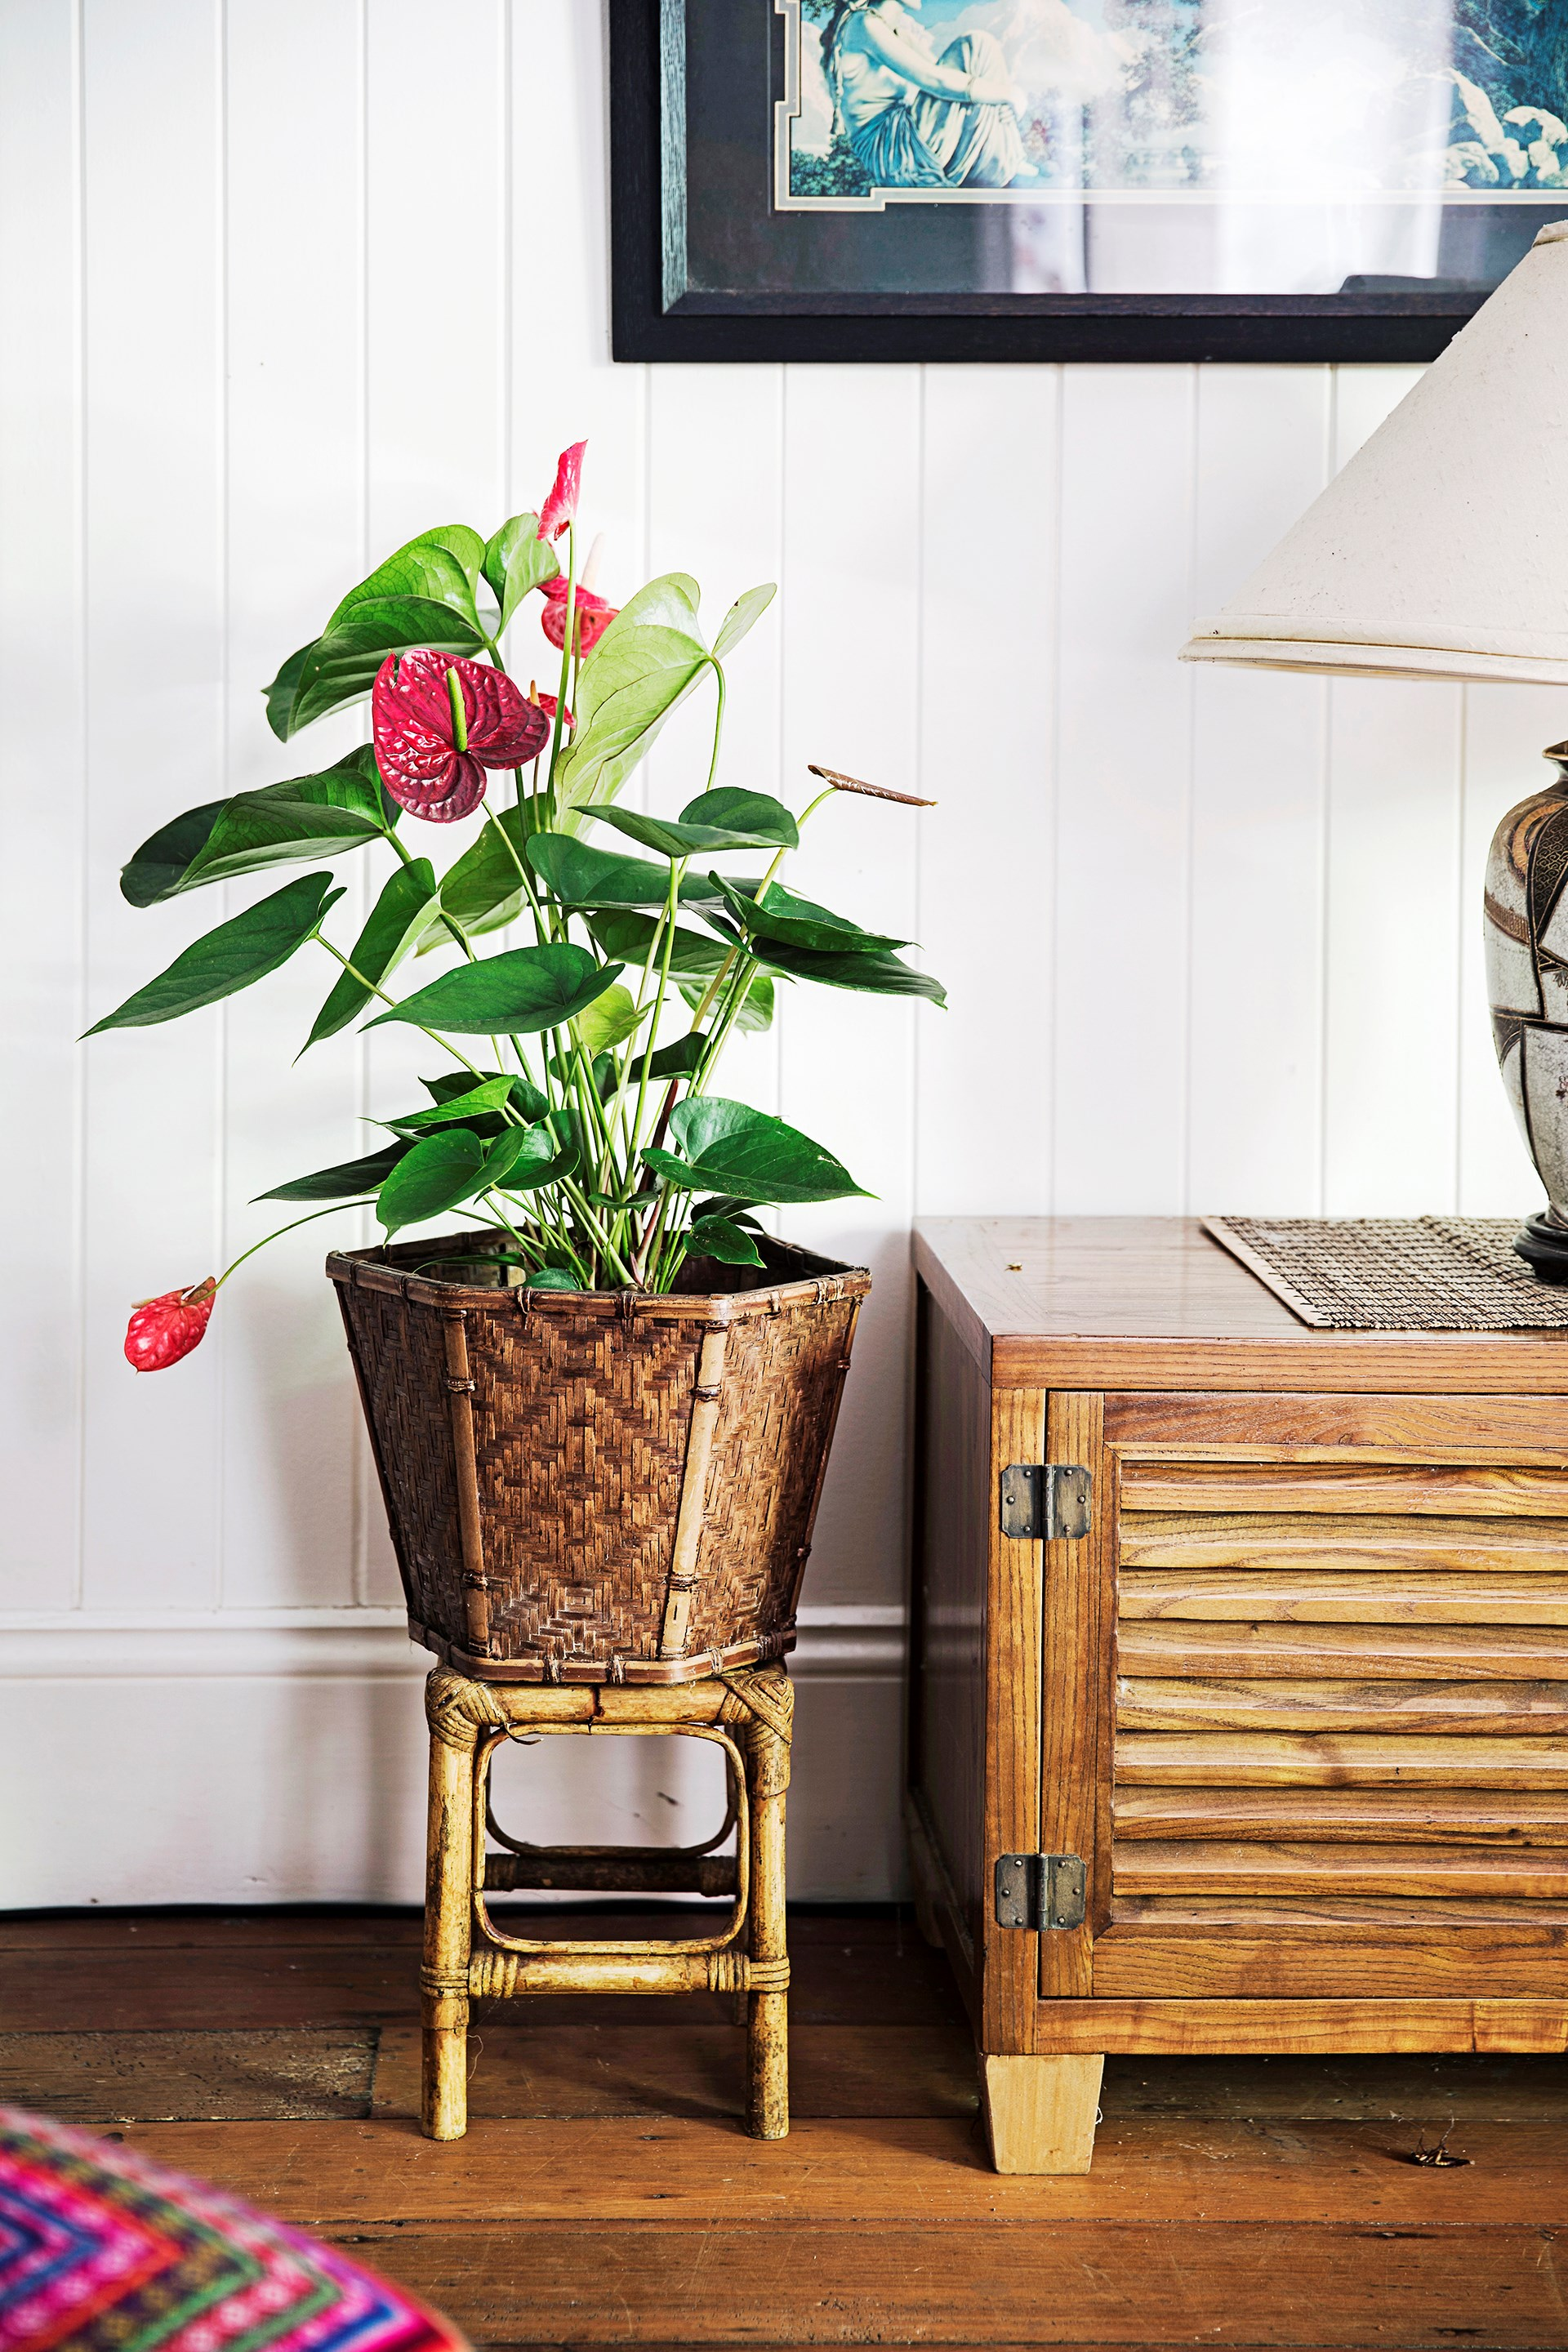 **Planters -** Indoor plants displayed in wicker plant stands or woven baskets give off a retro-boho vibe in this [holiday-inspired Queenslander home](http://www.homestolove.com.au/old-is-new-again-in-this-revamped-queenslander-3532). Photo: James Henry / homes+